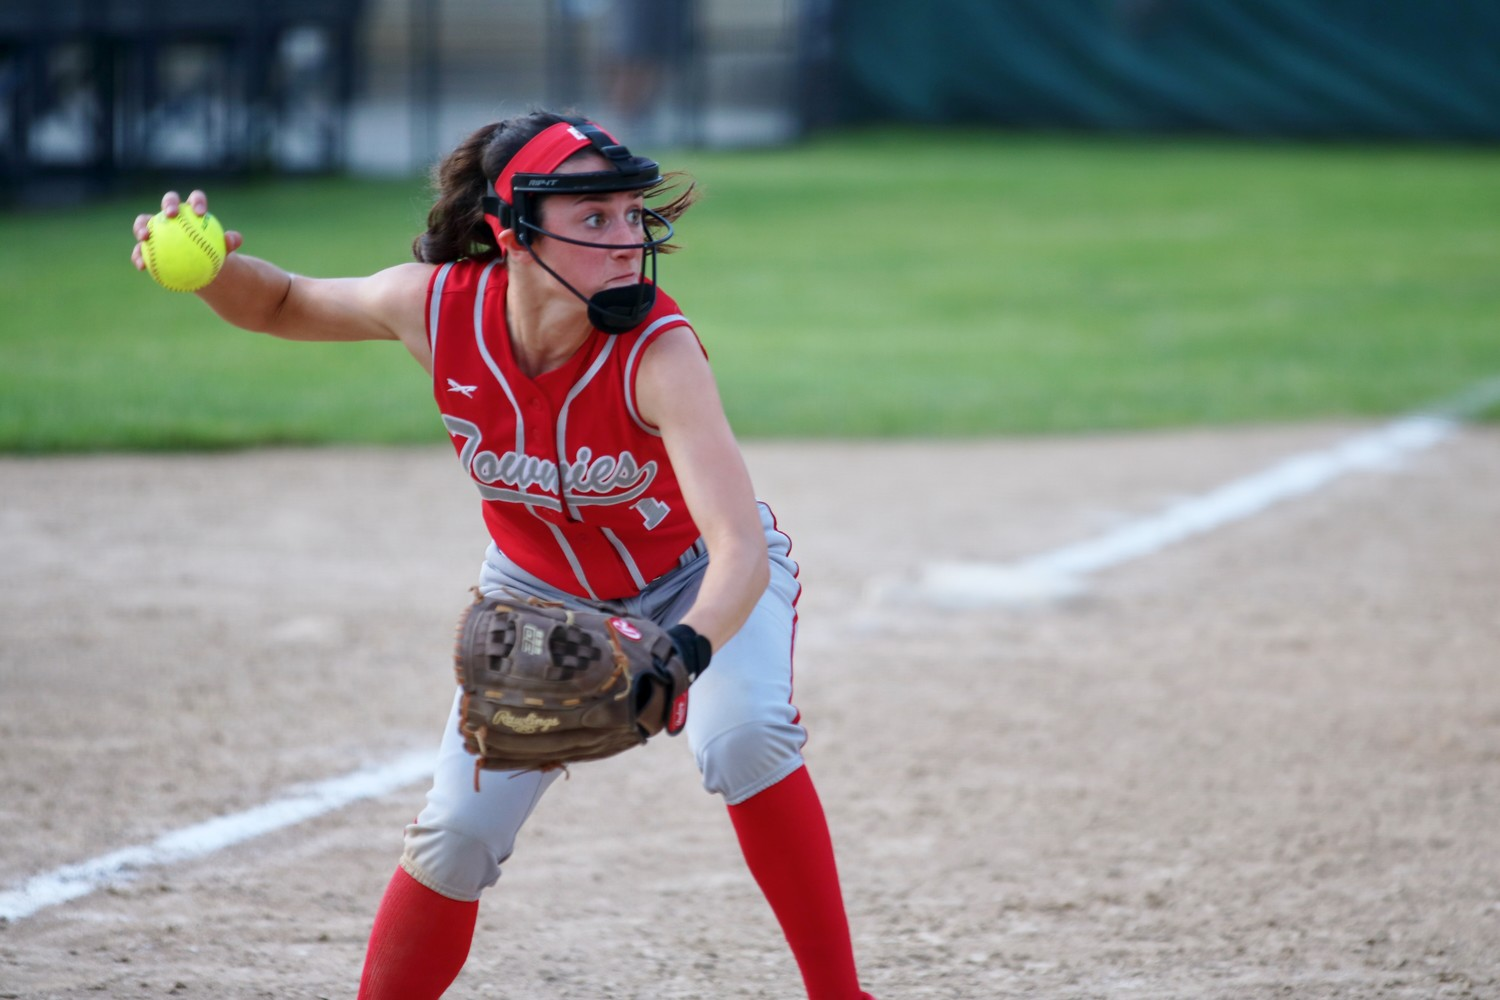 Townies Townies 3rd baseman Shelby Mello throwing to first in a softball playoff game.  File Photo by Paul Tumidajski.